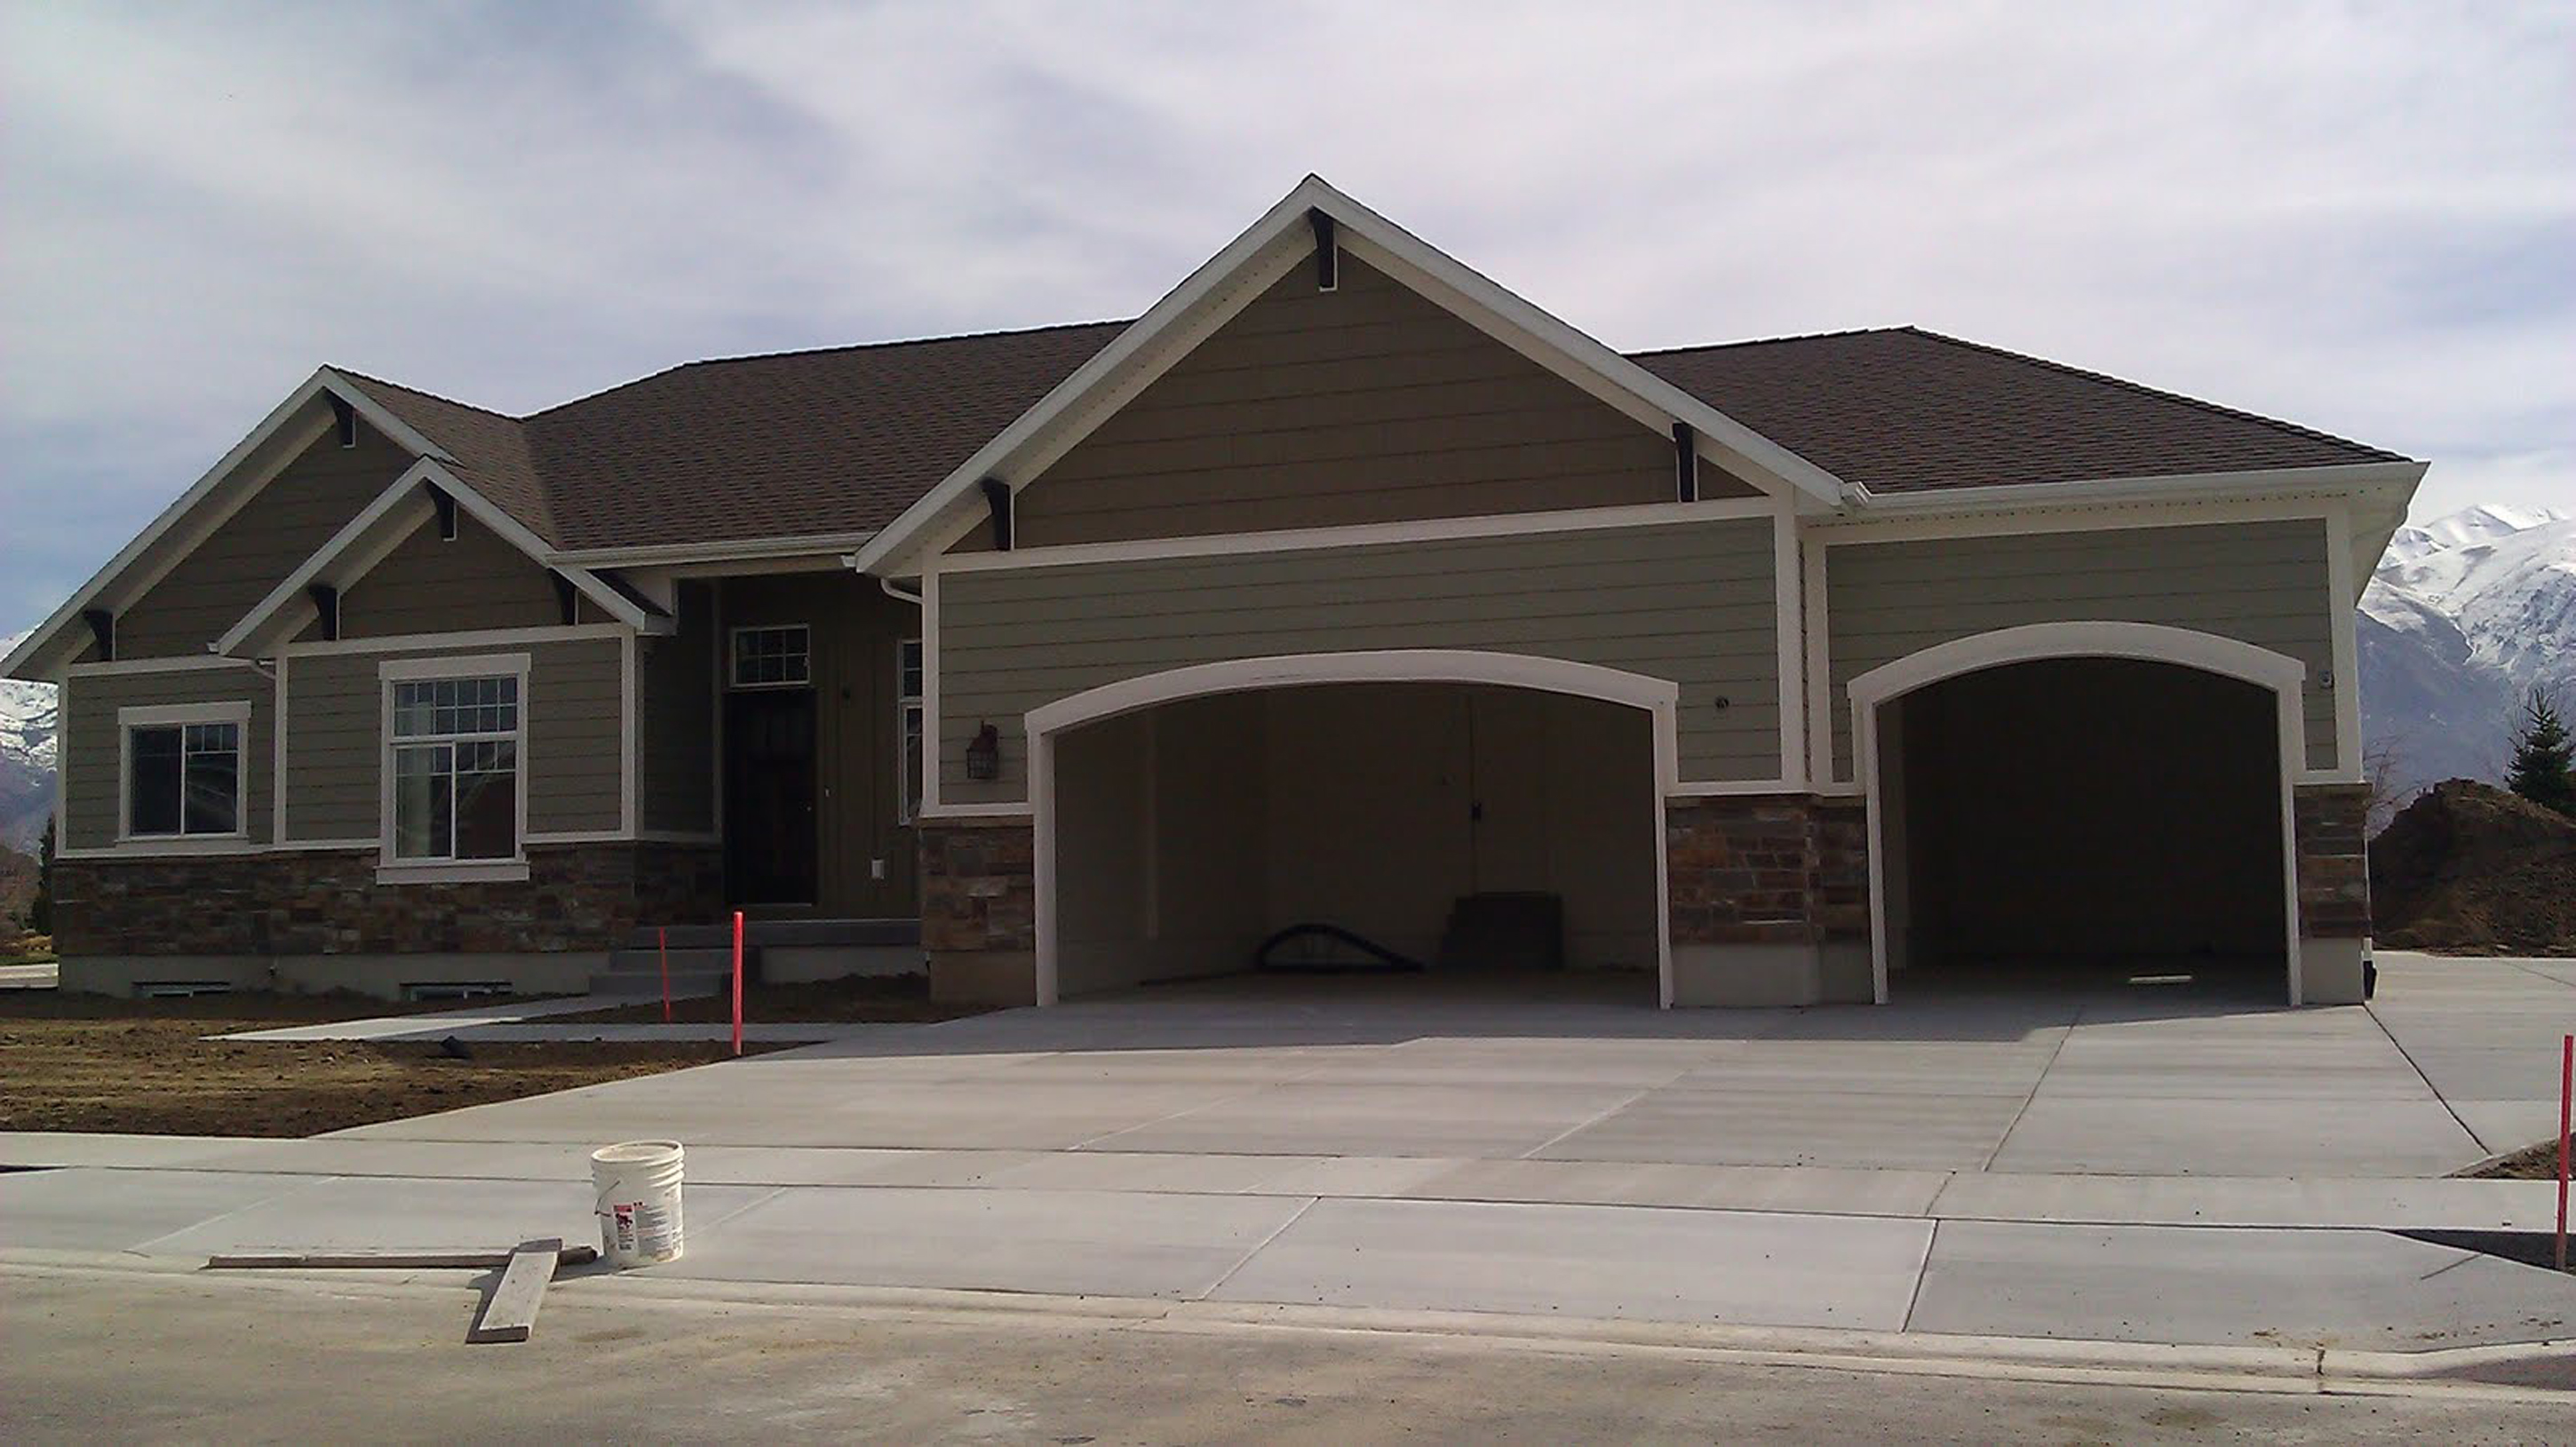 Attractive House Exterior Color Idea With Gray Wall With Gray Stone  Wall Accent And White Window Frames Together With Brown Roof Tile Beautiful  House  ...